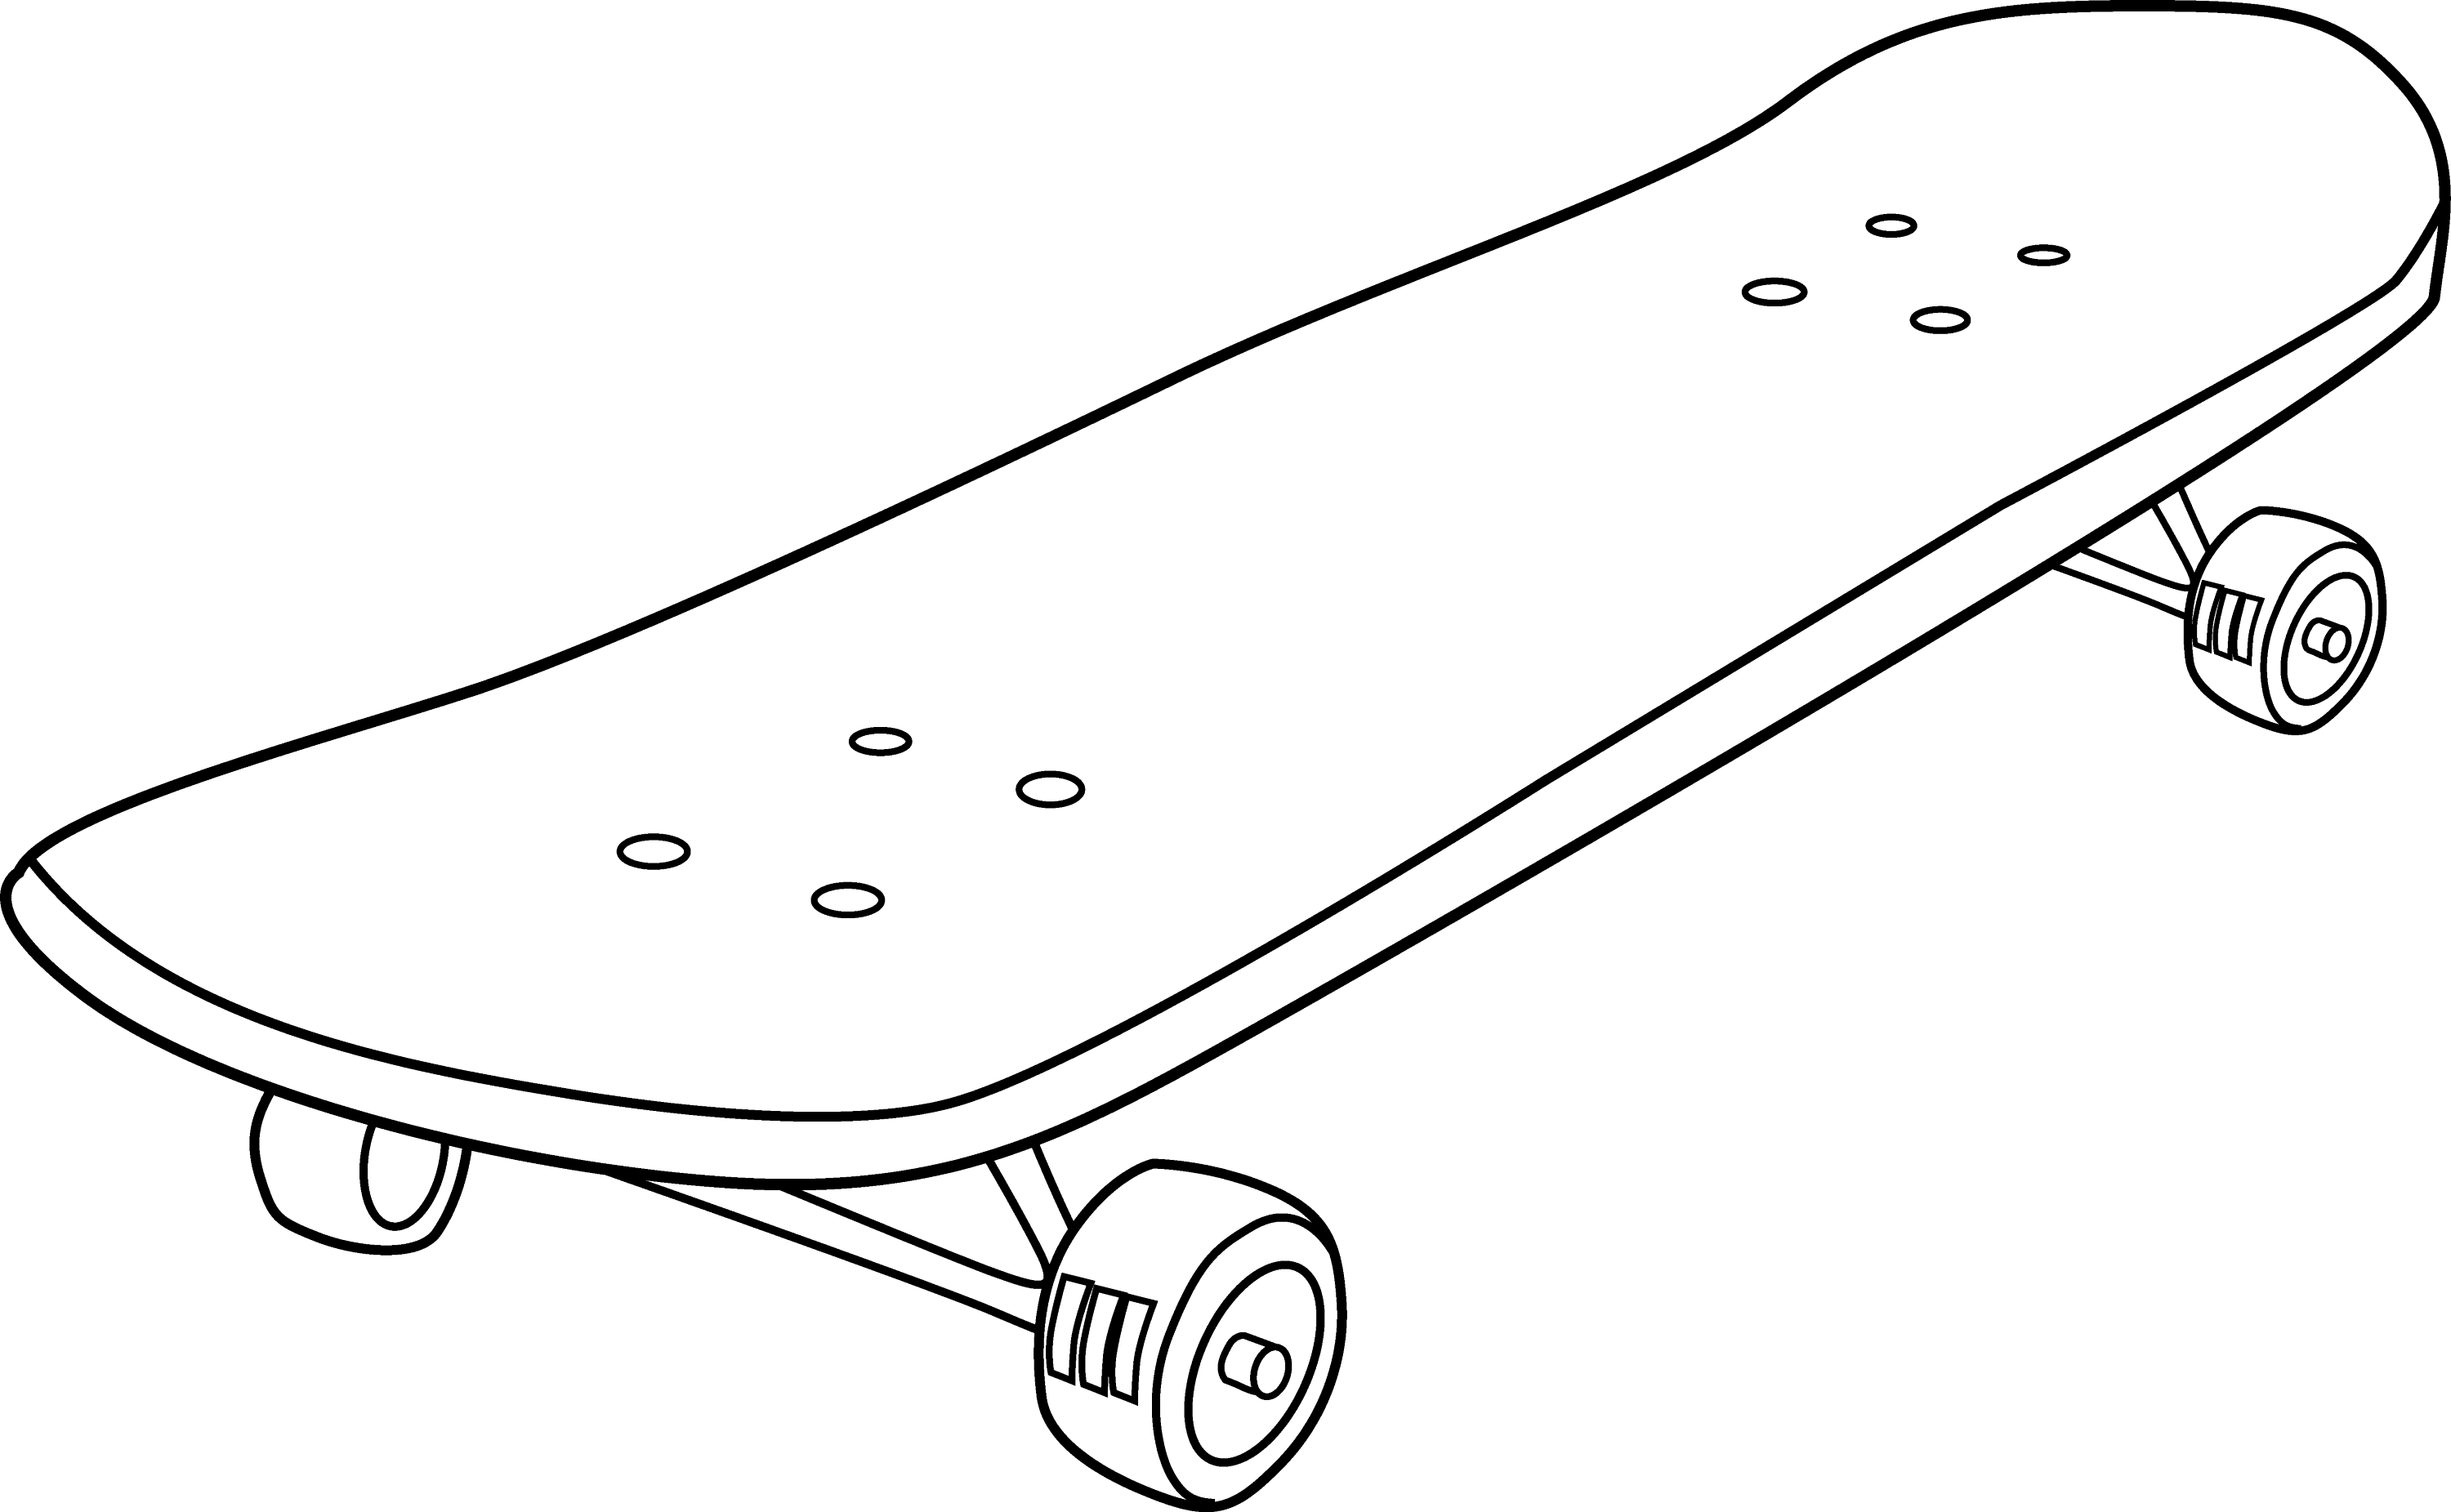 skateboard coloring pages for kids - photo#24